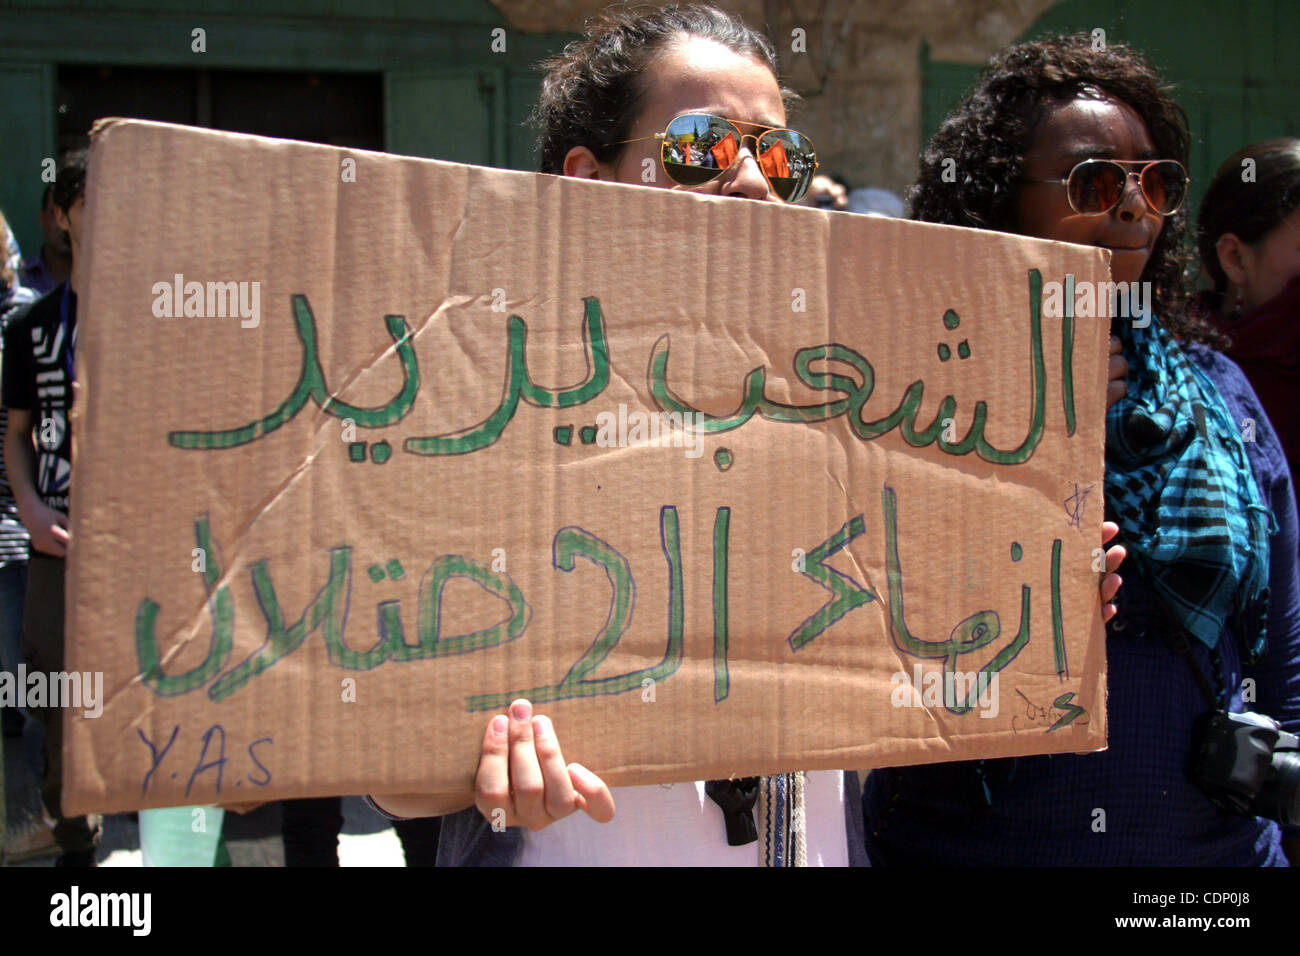 Palestinians and International activists pro-Palestinians demonstrate against the closure of Shuhada Street in Hebron, - Stock Image